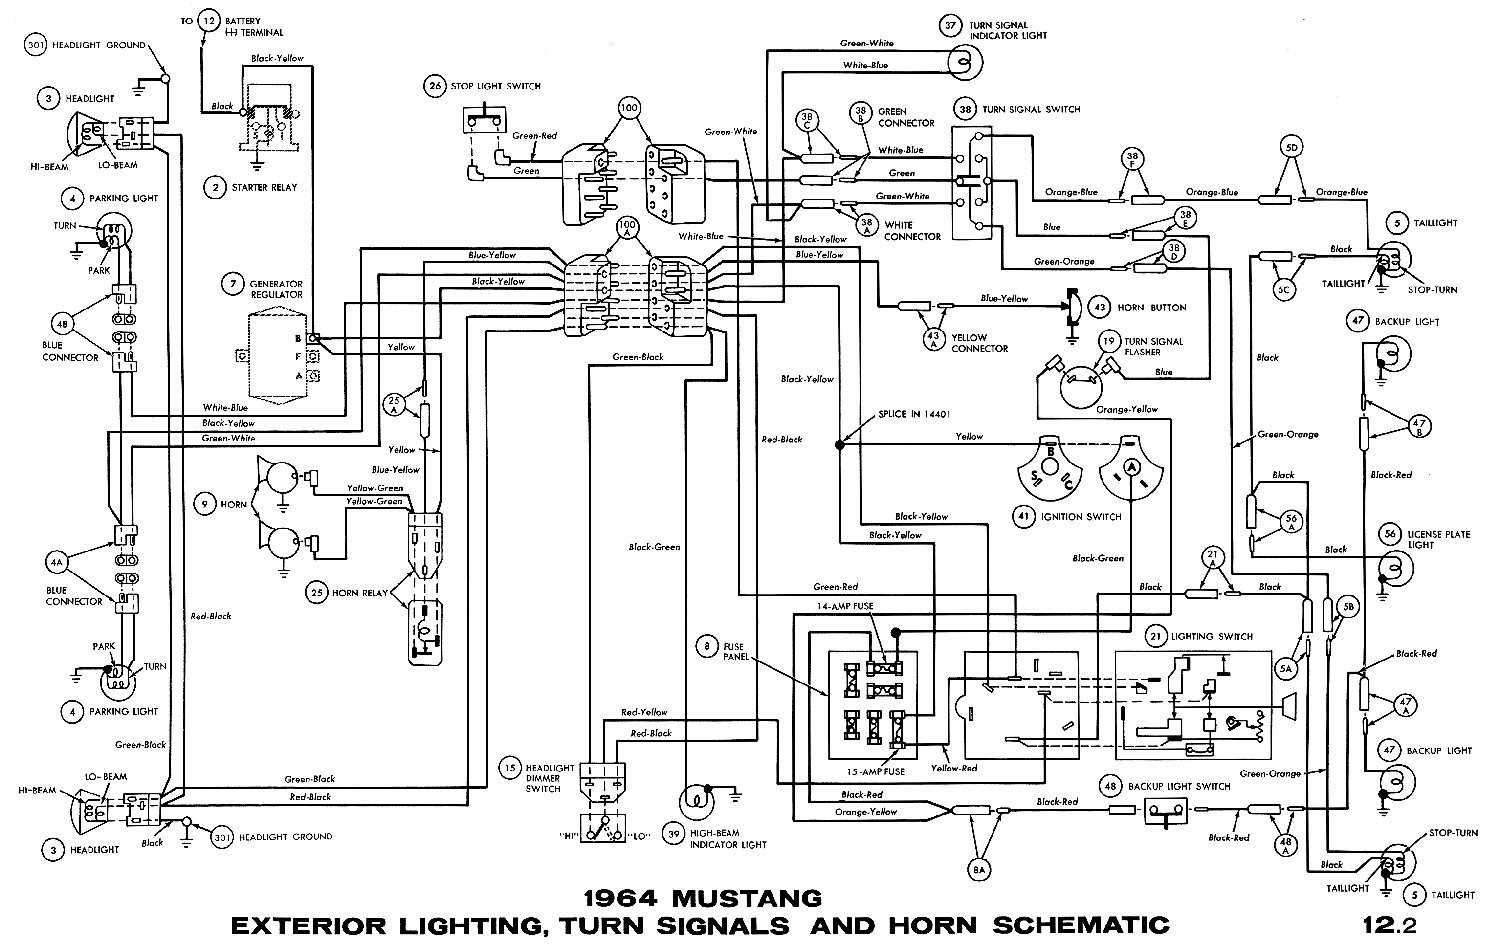 1969 Mustang Dash Wiring Diagram Smart Diagrams C10 Fuse Box Free Download Schematic 66 Horn Trusted U2022 Rh 149 28 242 213 Under 1966 Color